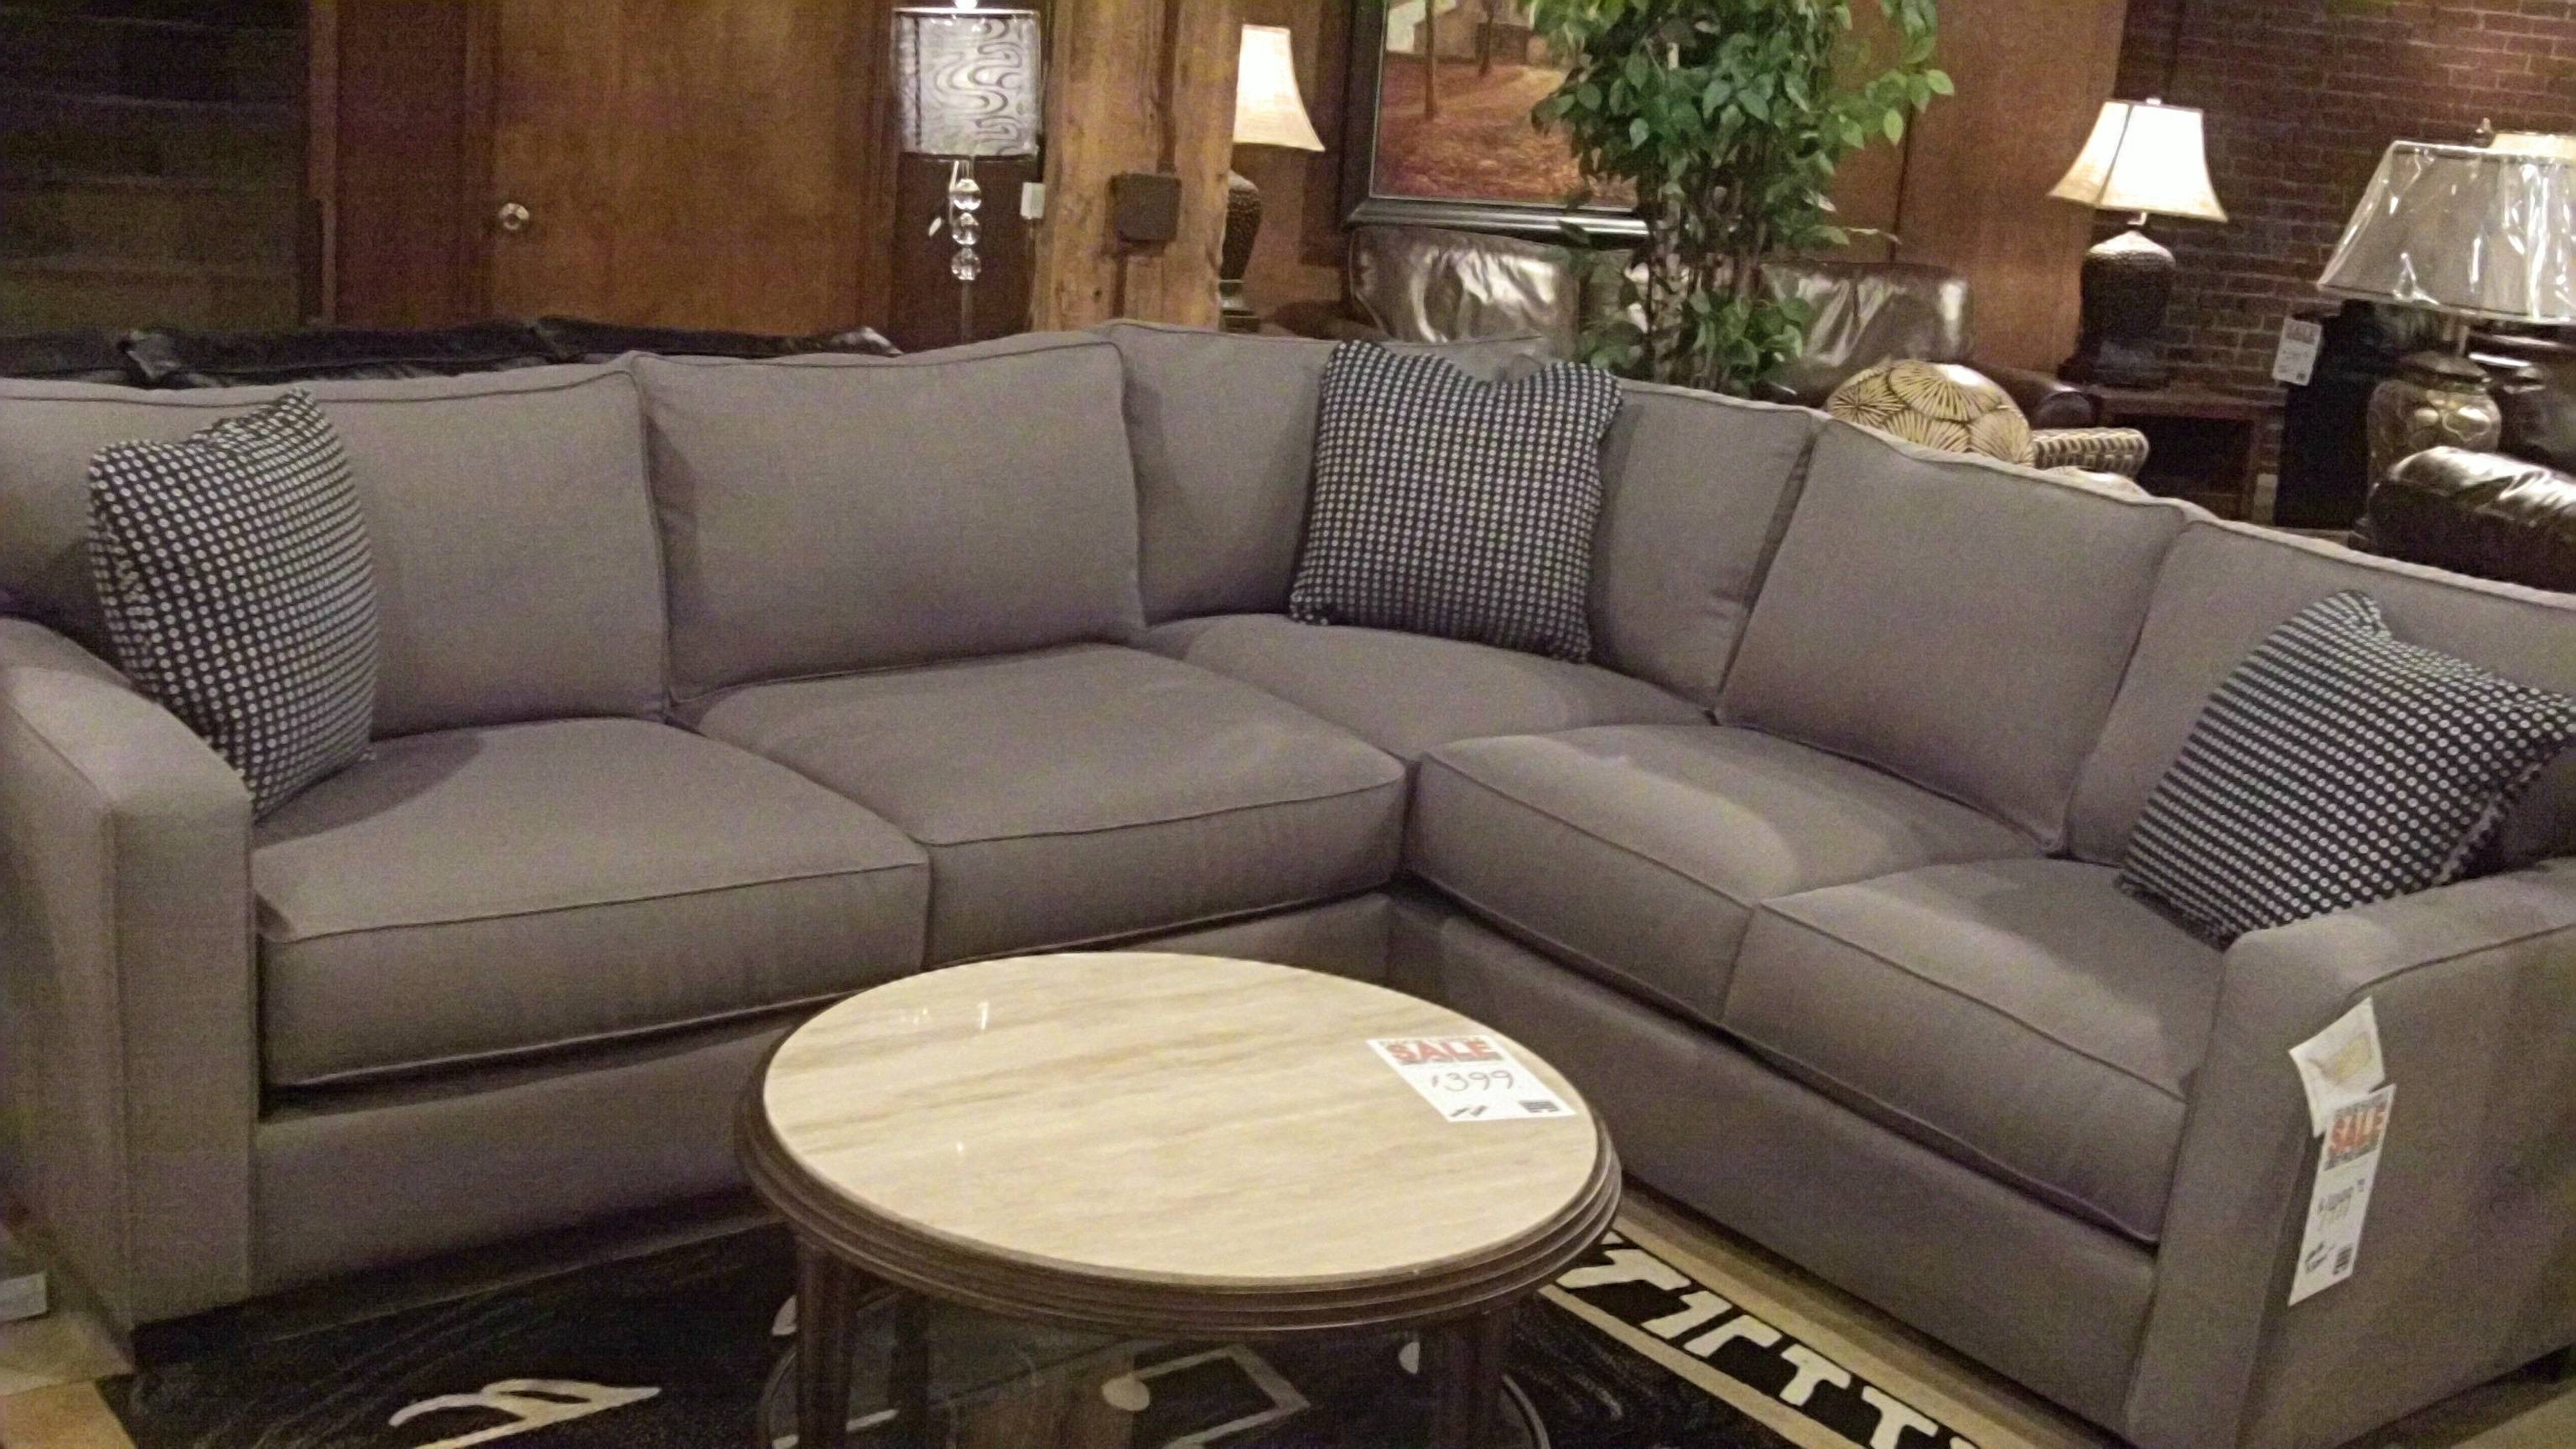 Leather Sectional Sofas San Diego - Slimsectionalsofas for Sectional Sofa San Diego (Image 15 of 30)